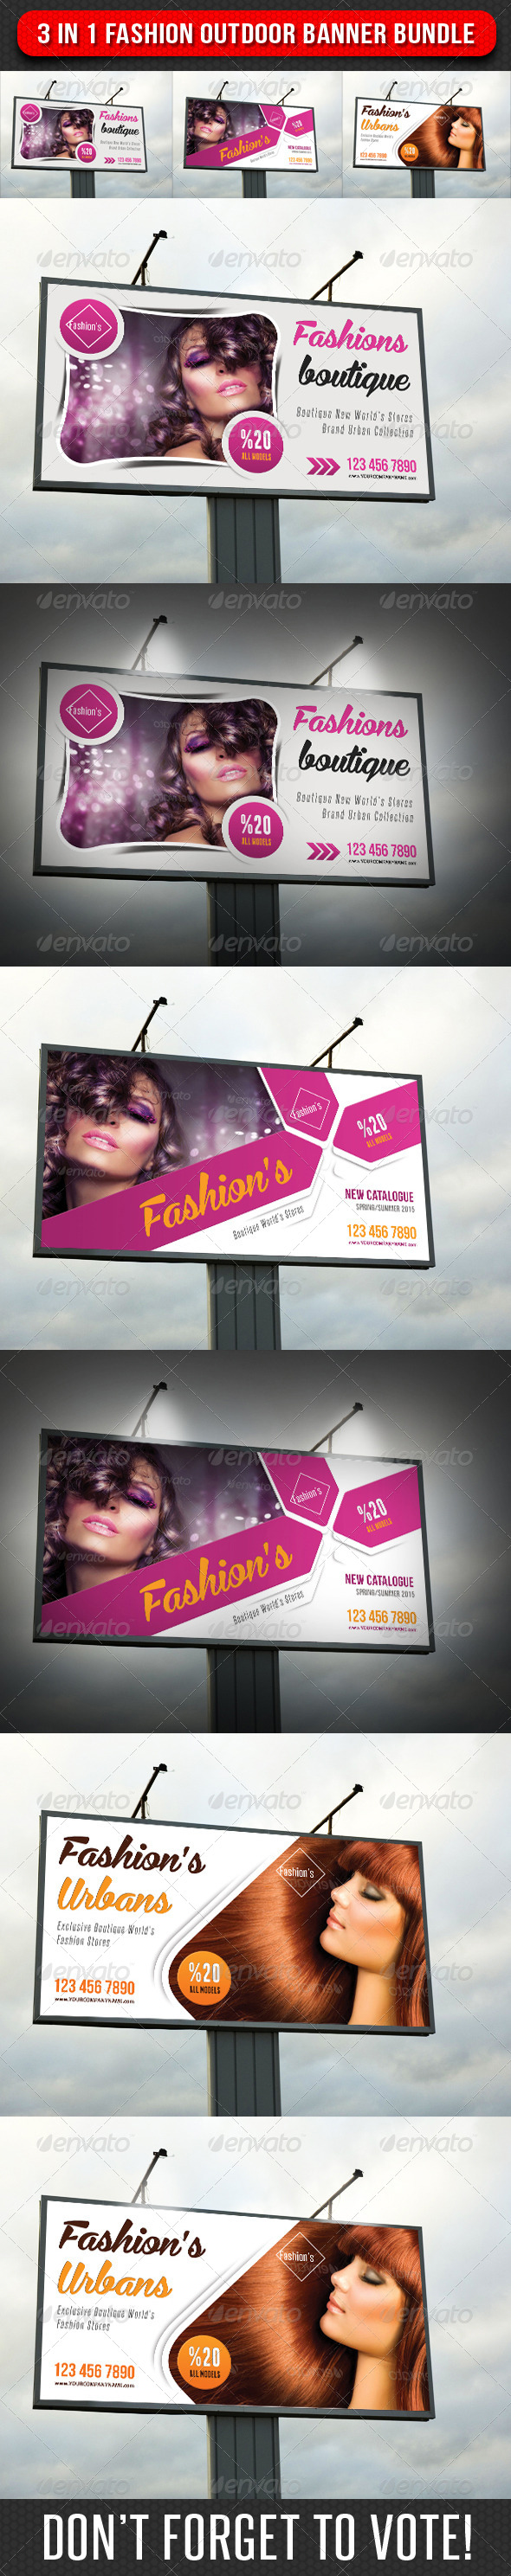 GraphicRiver 3 in 1 Fashion Outdoor Banner Bundle 03 7568608